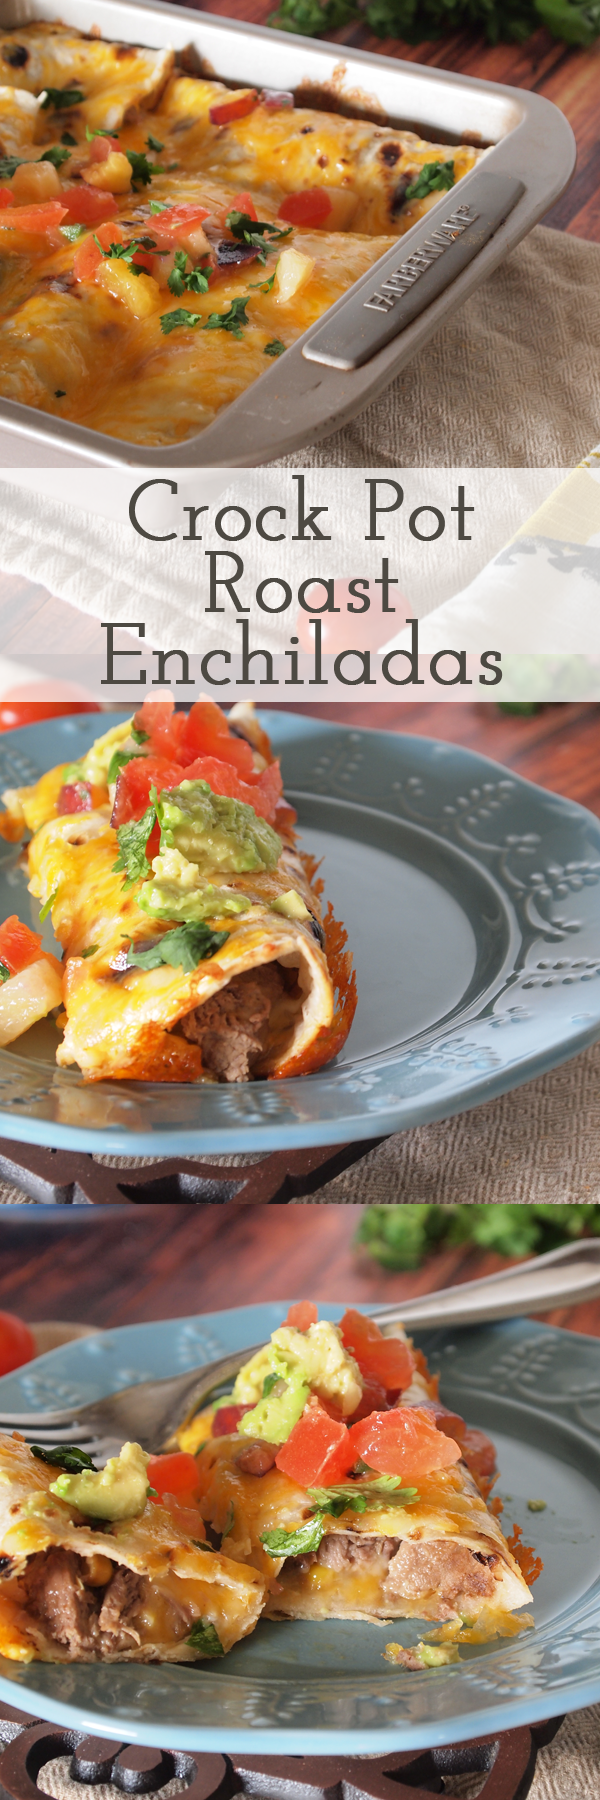 Crock pot roast enchilada recipe - seriously these are so easy to make and are perfect for a busy weeknight meal!